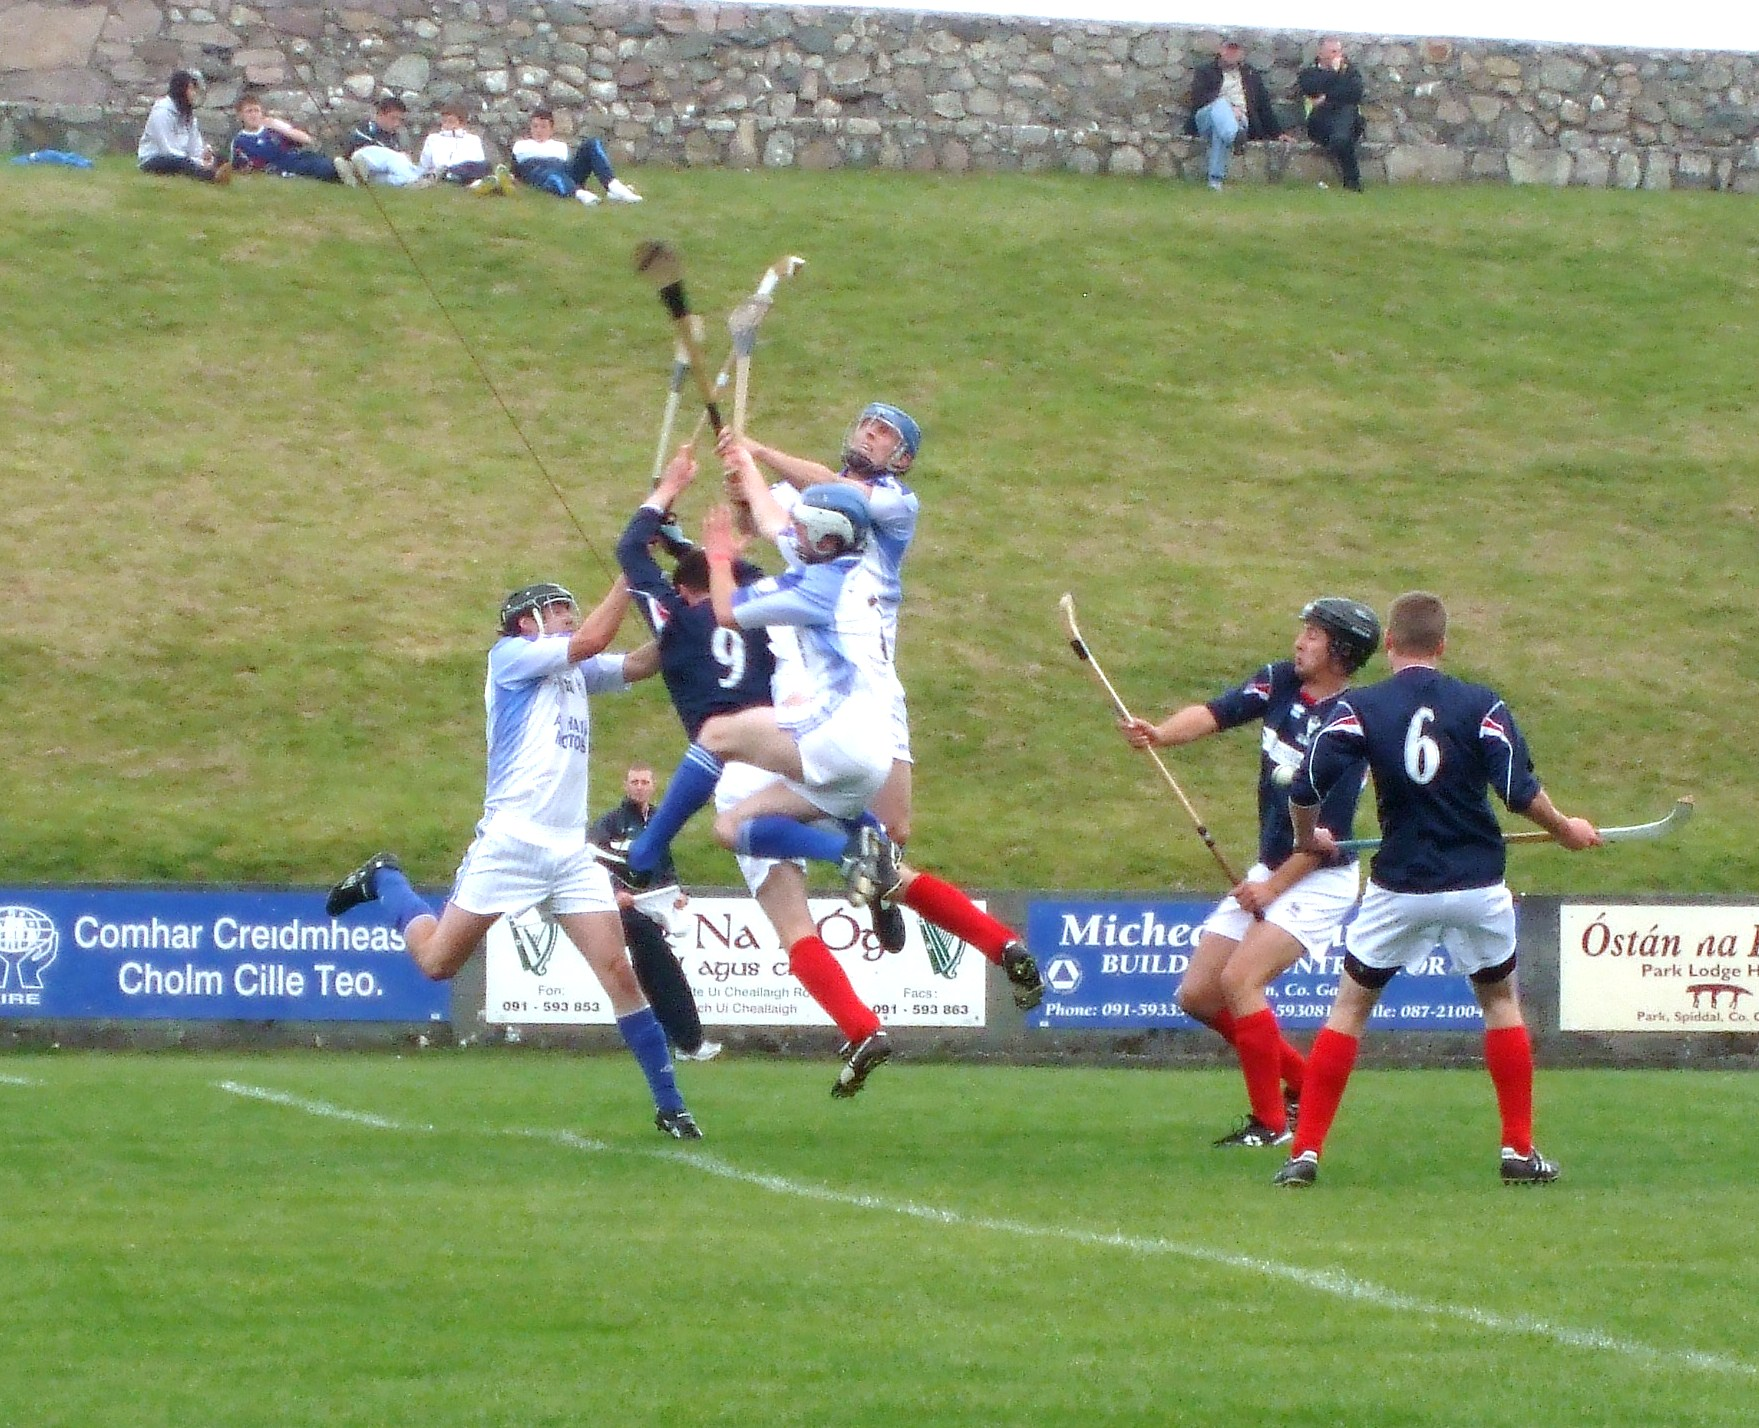 Iomain Cholmcille - A Cultural And Sporting Success Once Again.